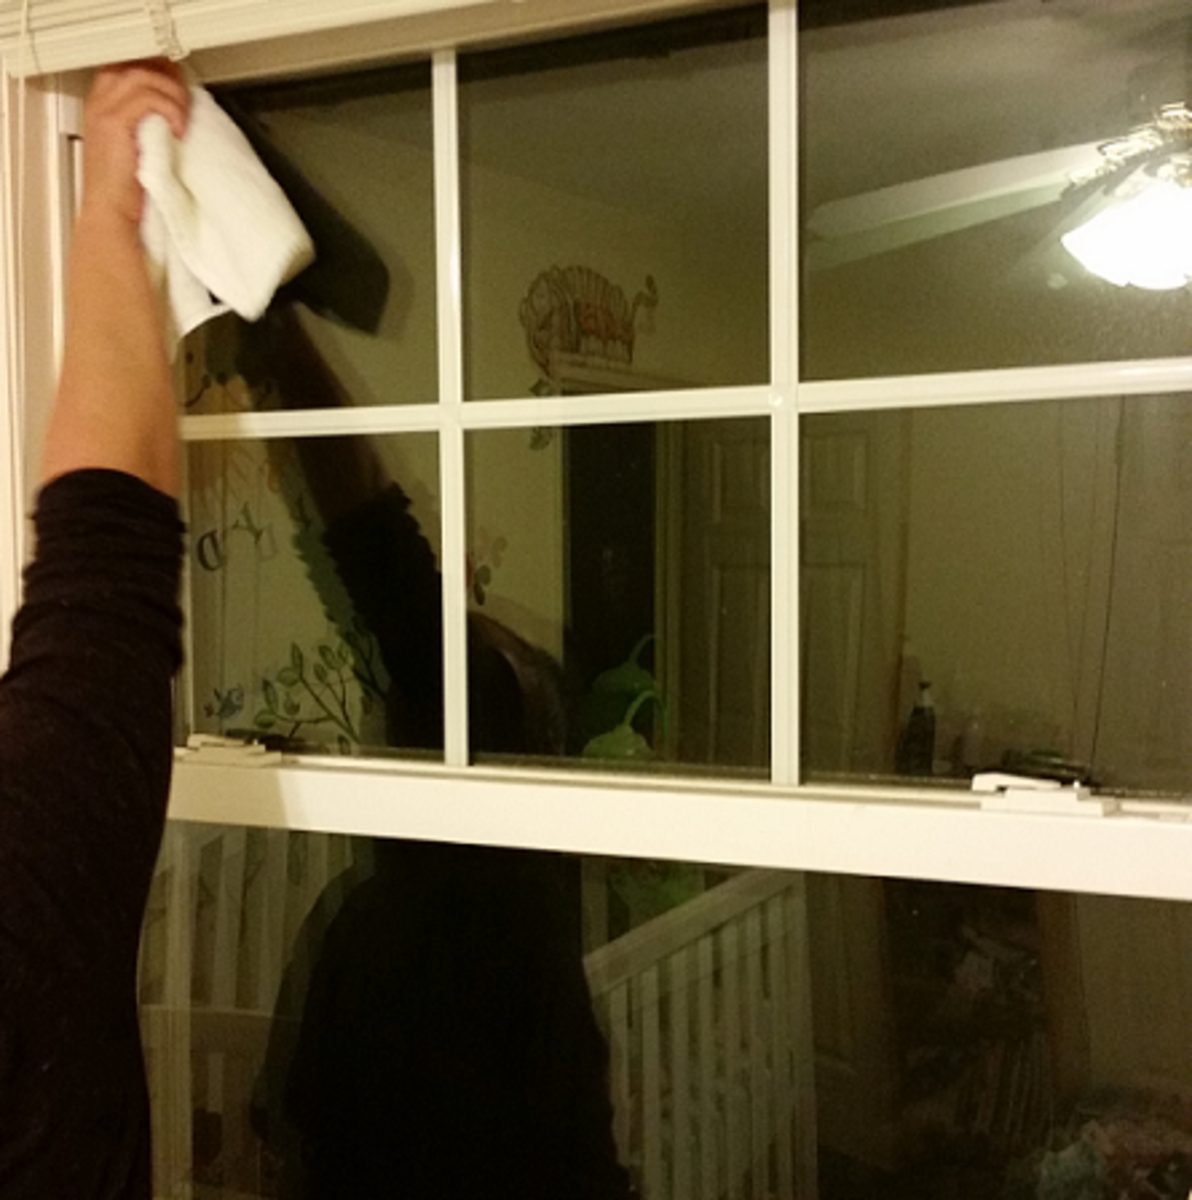 How To Winterize Drafty Windows In The Winter